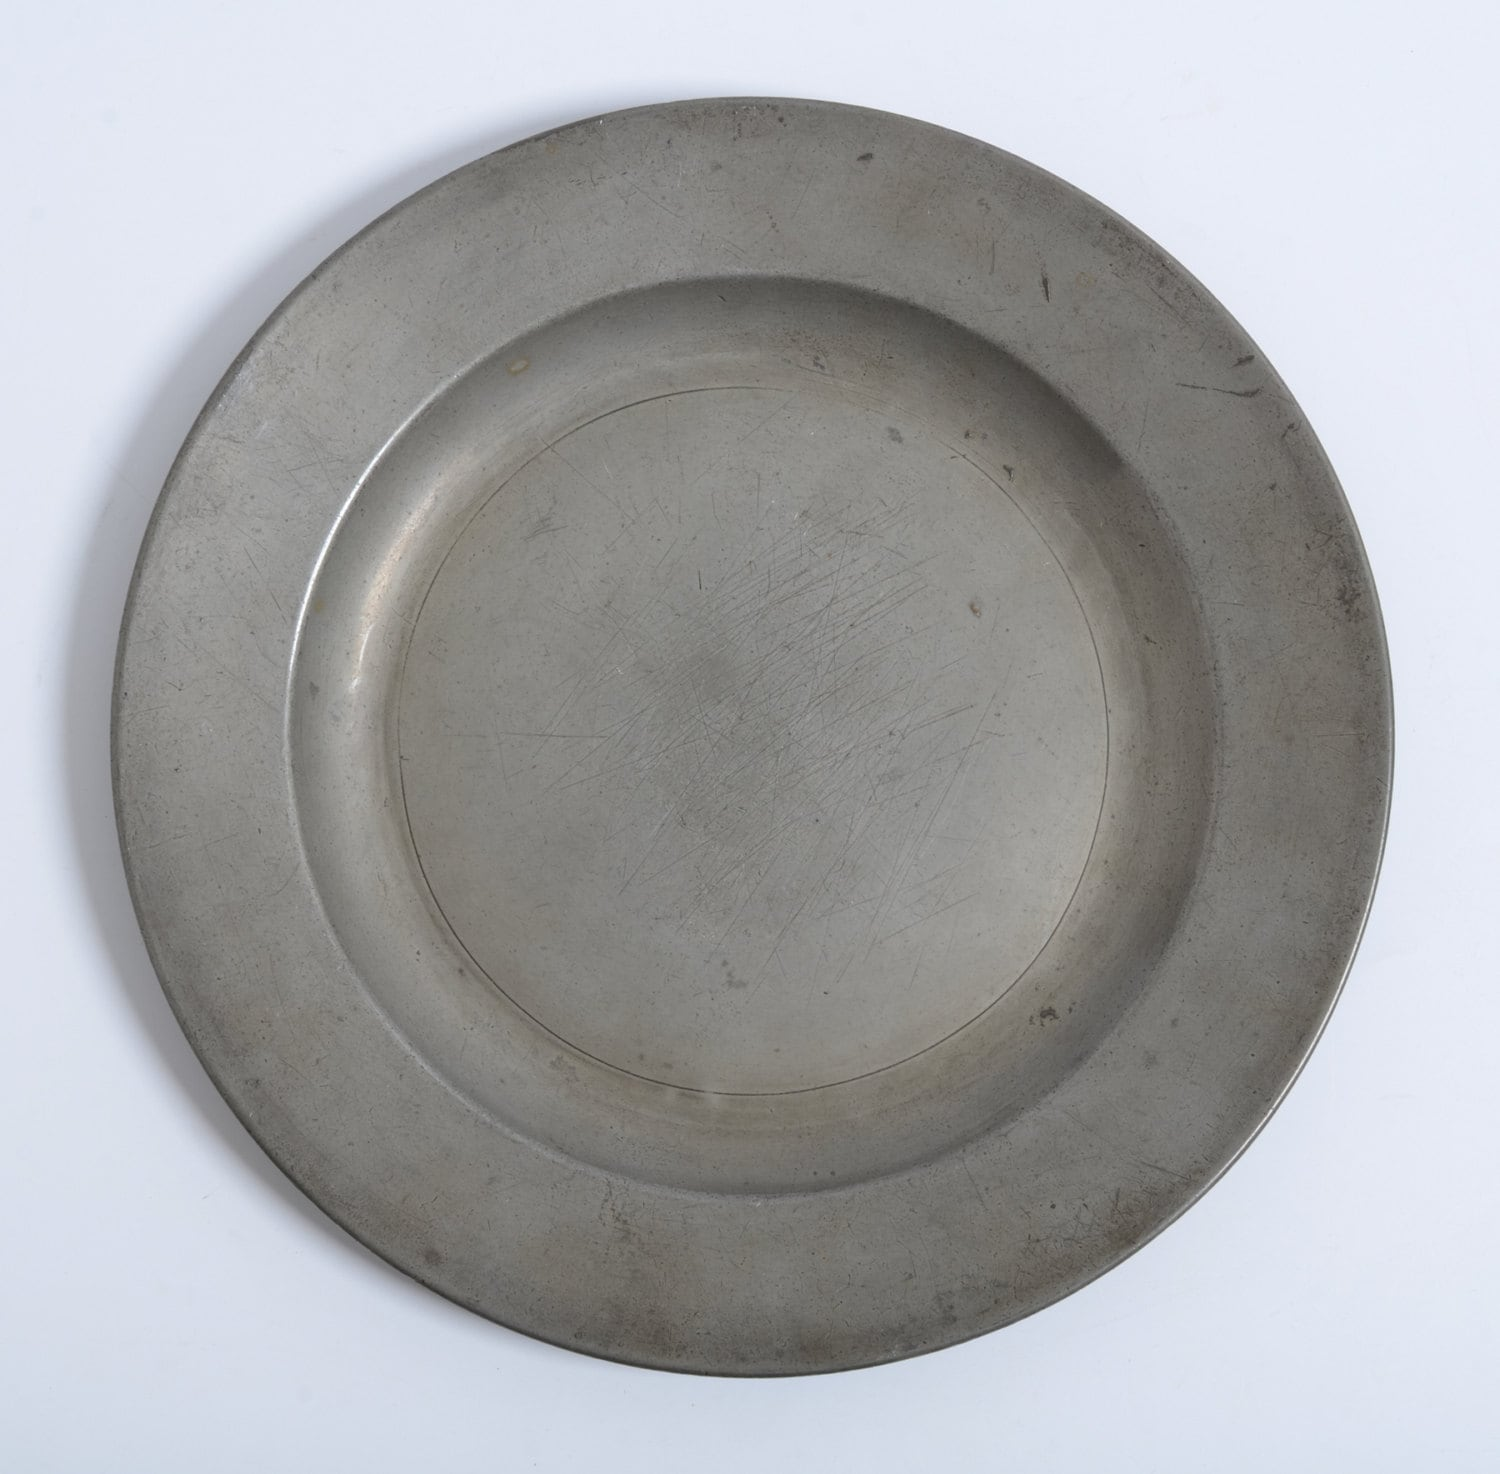 Antique Pewter Plates : Antique pewter plate by john vaughan london ca s th